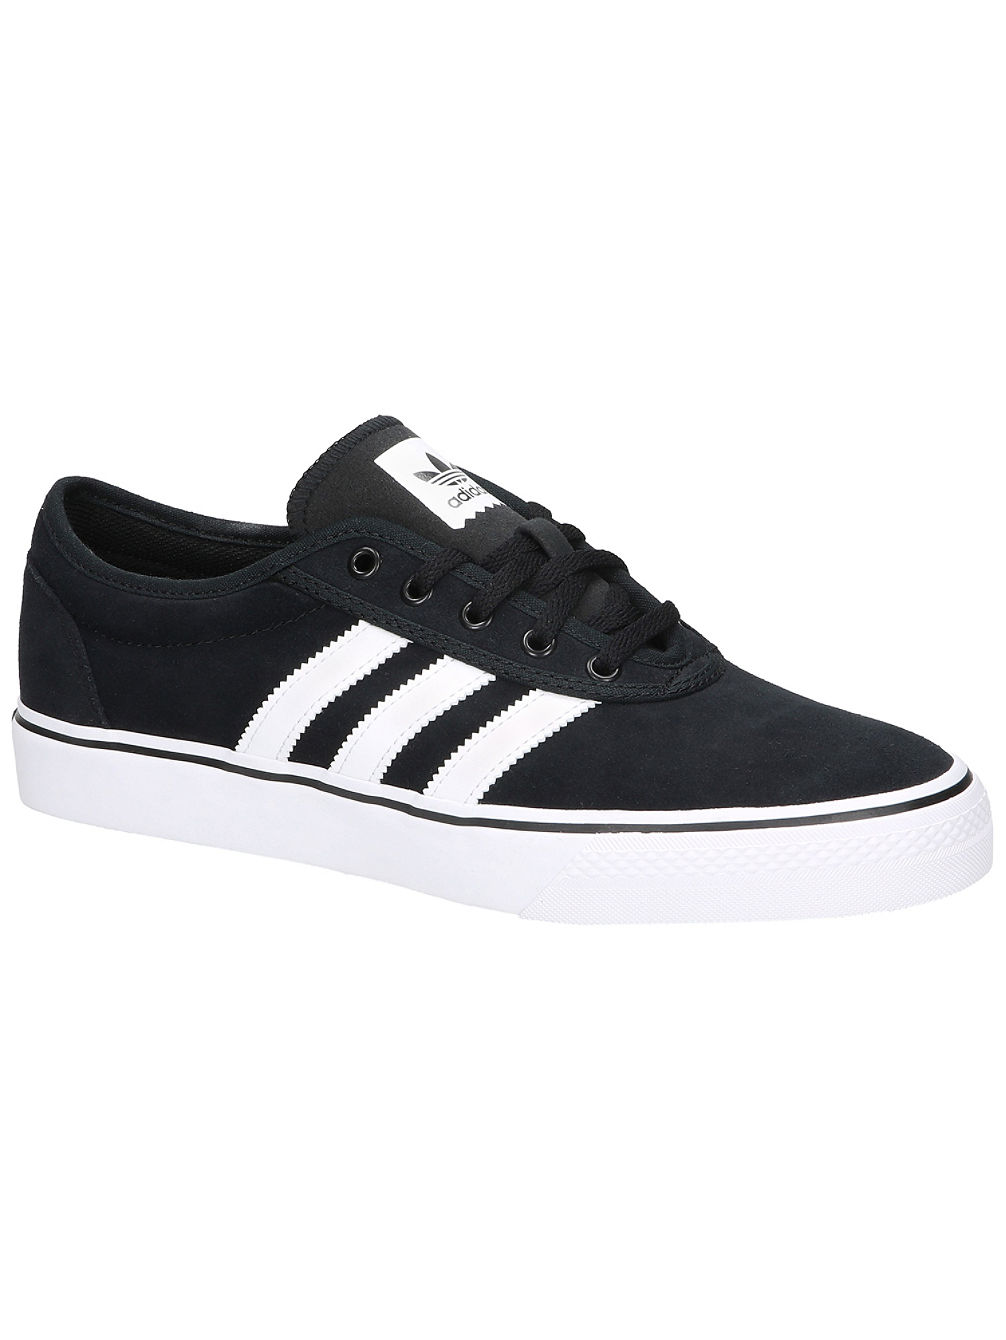 83575cc9 Buy adidas Skateboarding Adi Ease Skate Shoes online at Blue Tomato